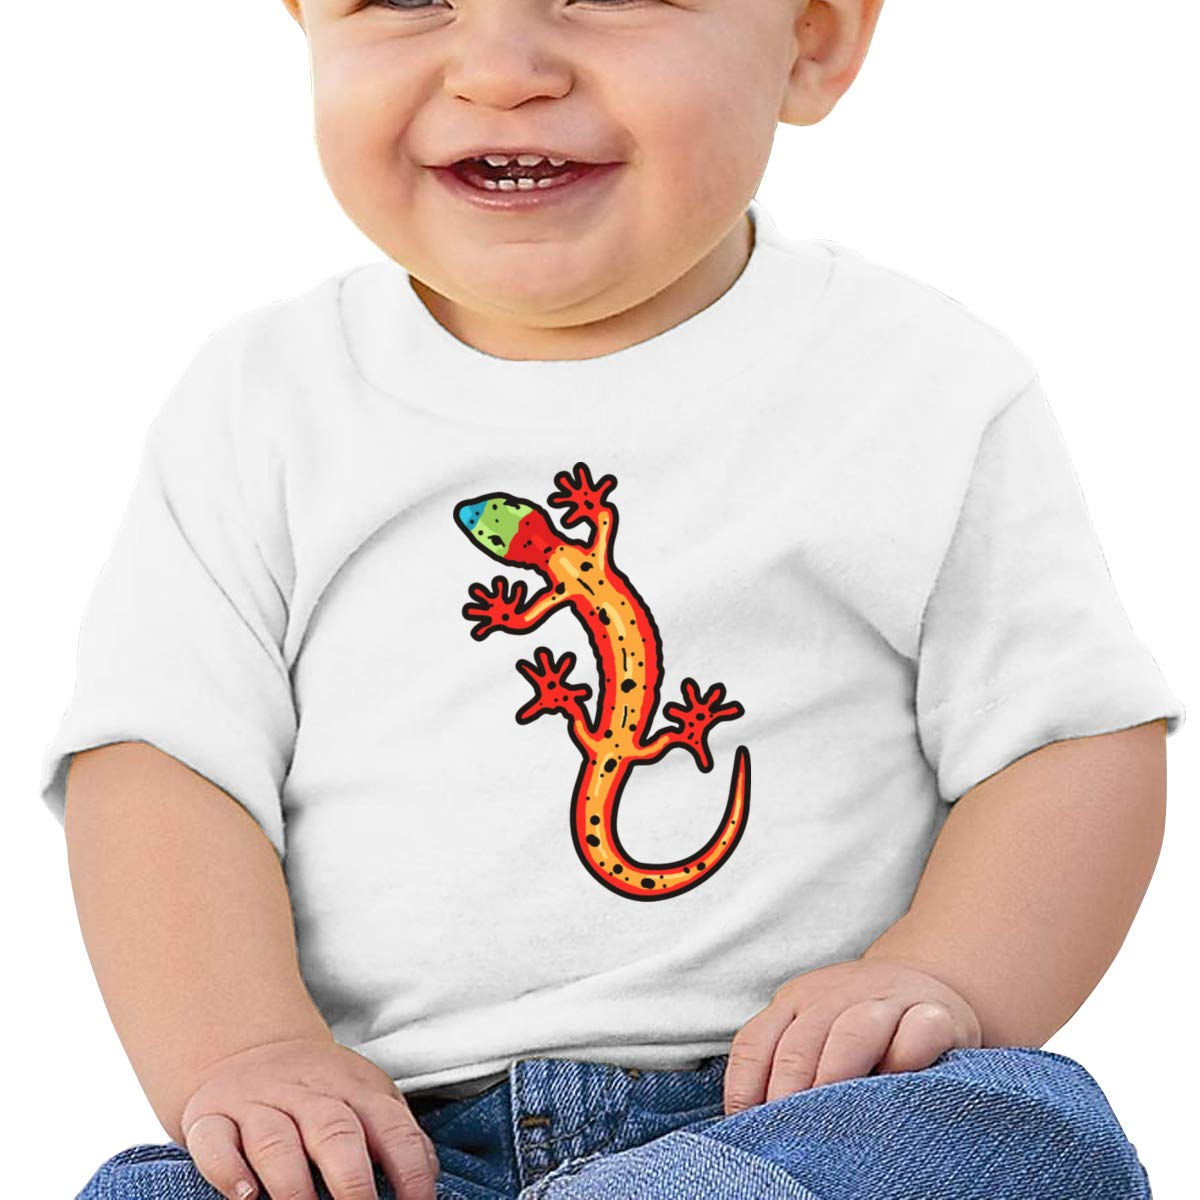 Qiop Nee Gecko Multicolored Short Sleeves Shirt Baby Girls